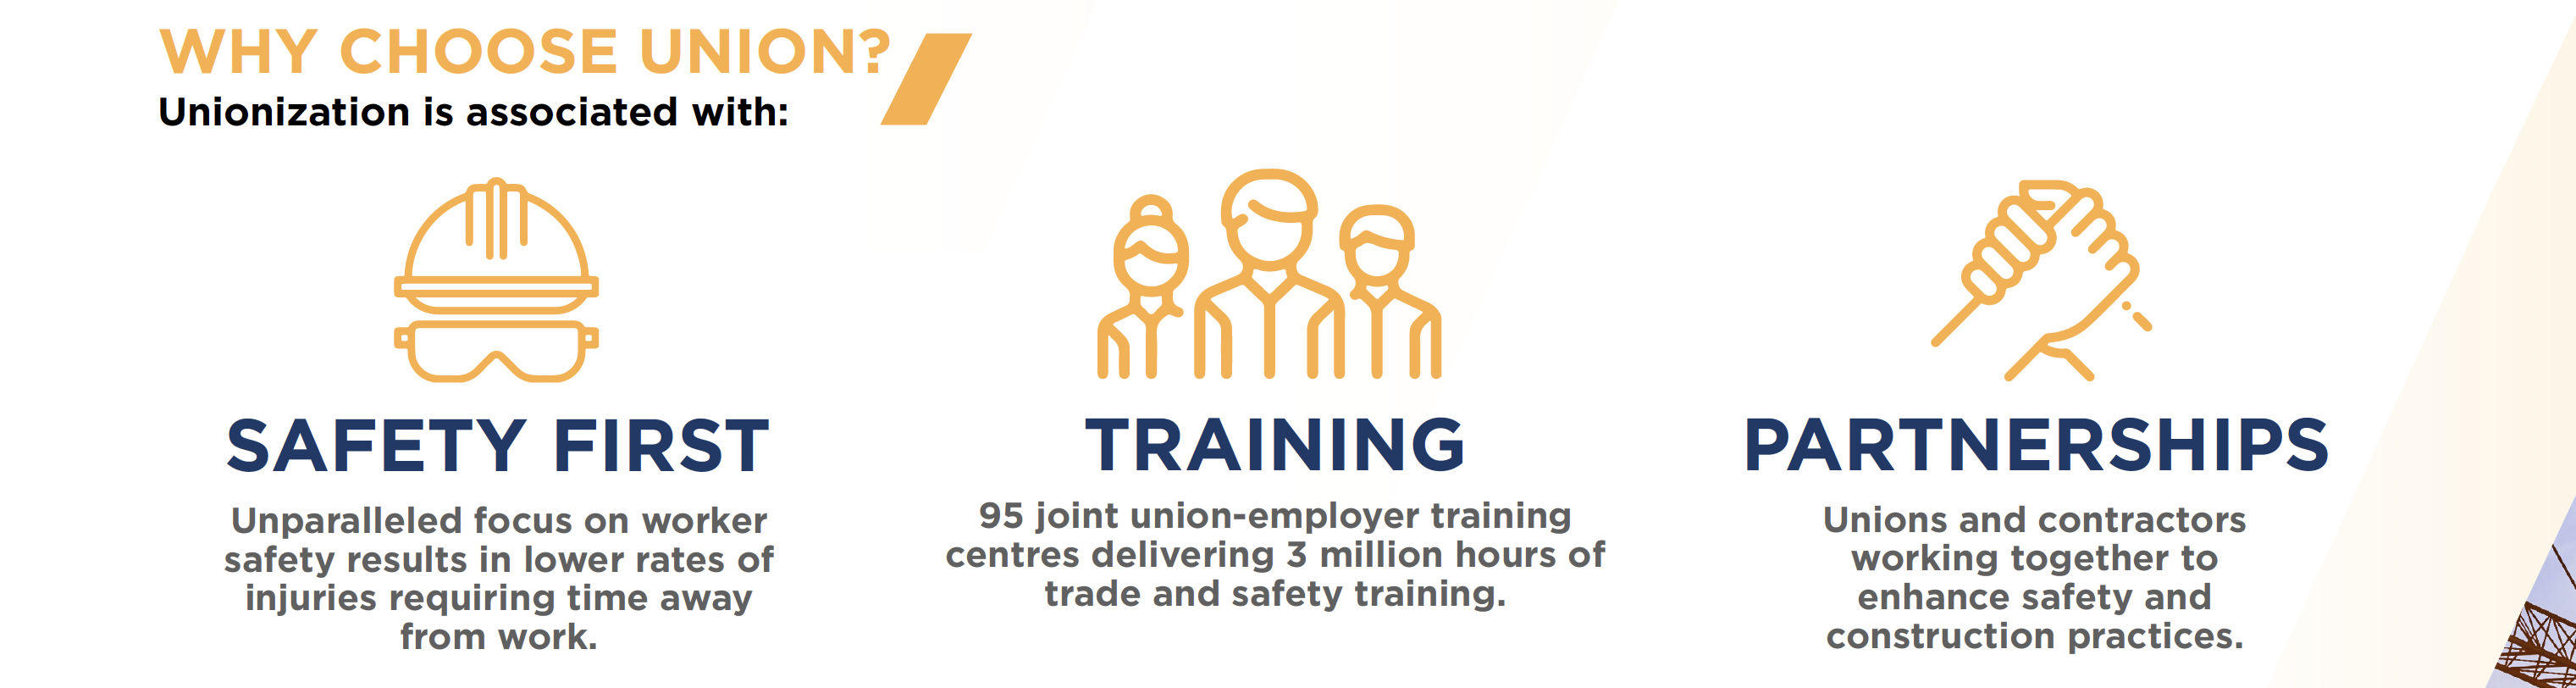 Why choose union? Unionization is associated with: Safety first unparalleled focus on worker safety results in lower rates of injuries requiring time away form work. Training 95 join union-employer train centres delivering 3 million hours of trade and safety training Partnerships unions and contractors working together to enhance safety and construction practices.